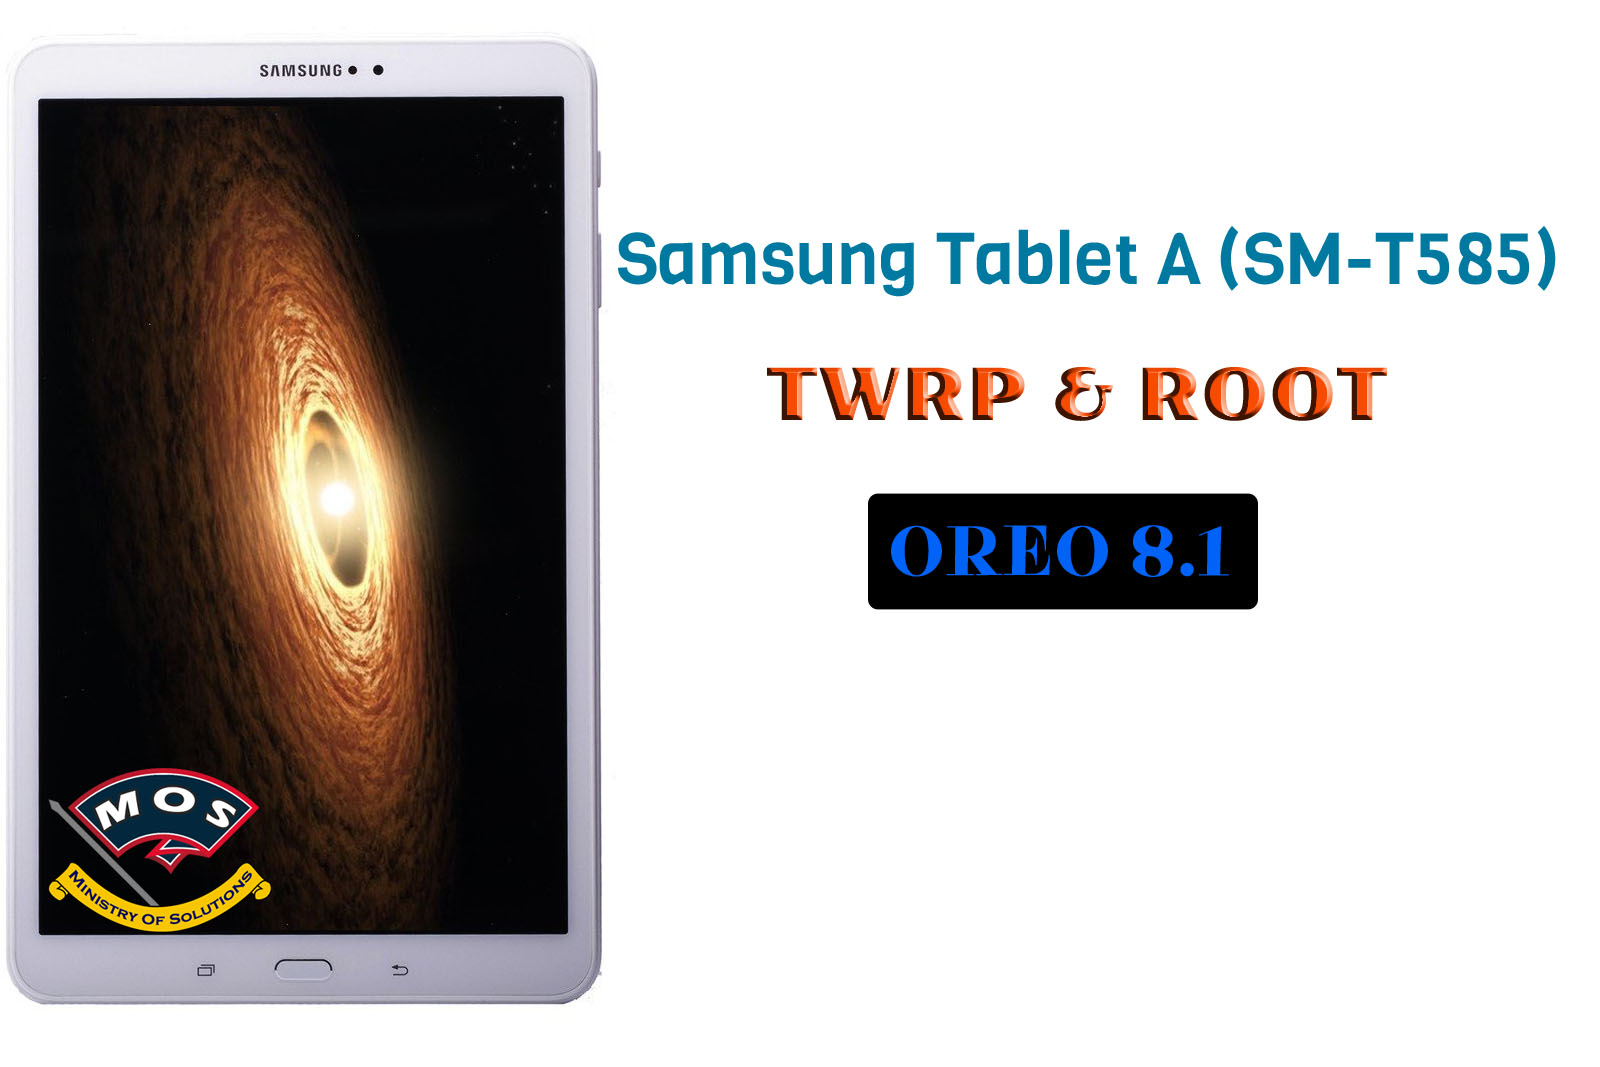 Samsung Tablet A SM-T585 TWRP and Root Oreo 8 1 - Ministry Of Solutions